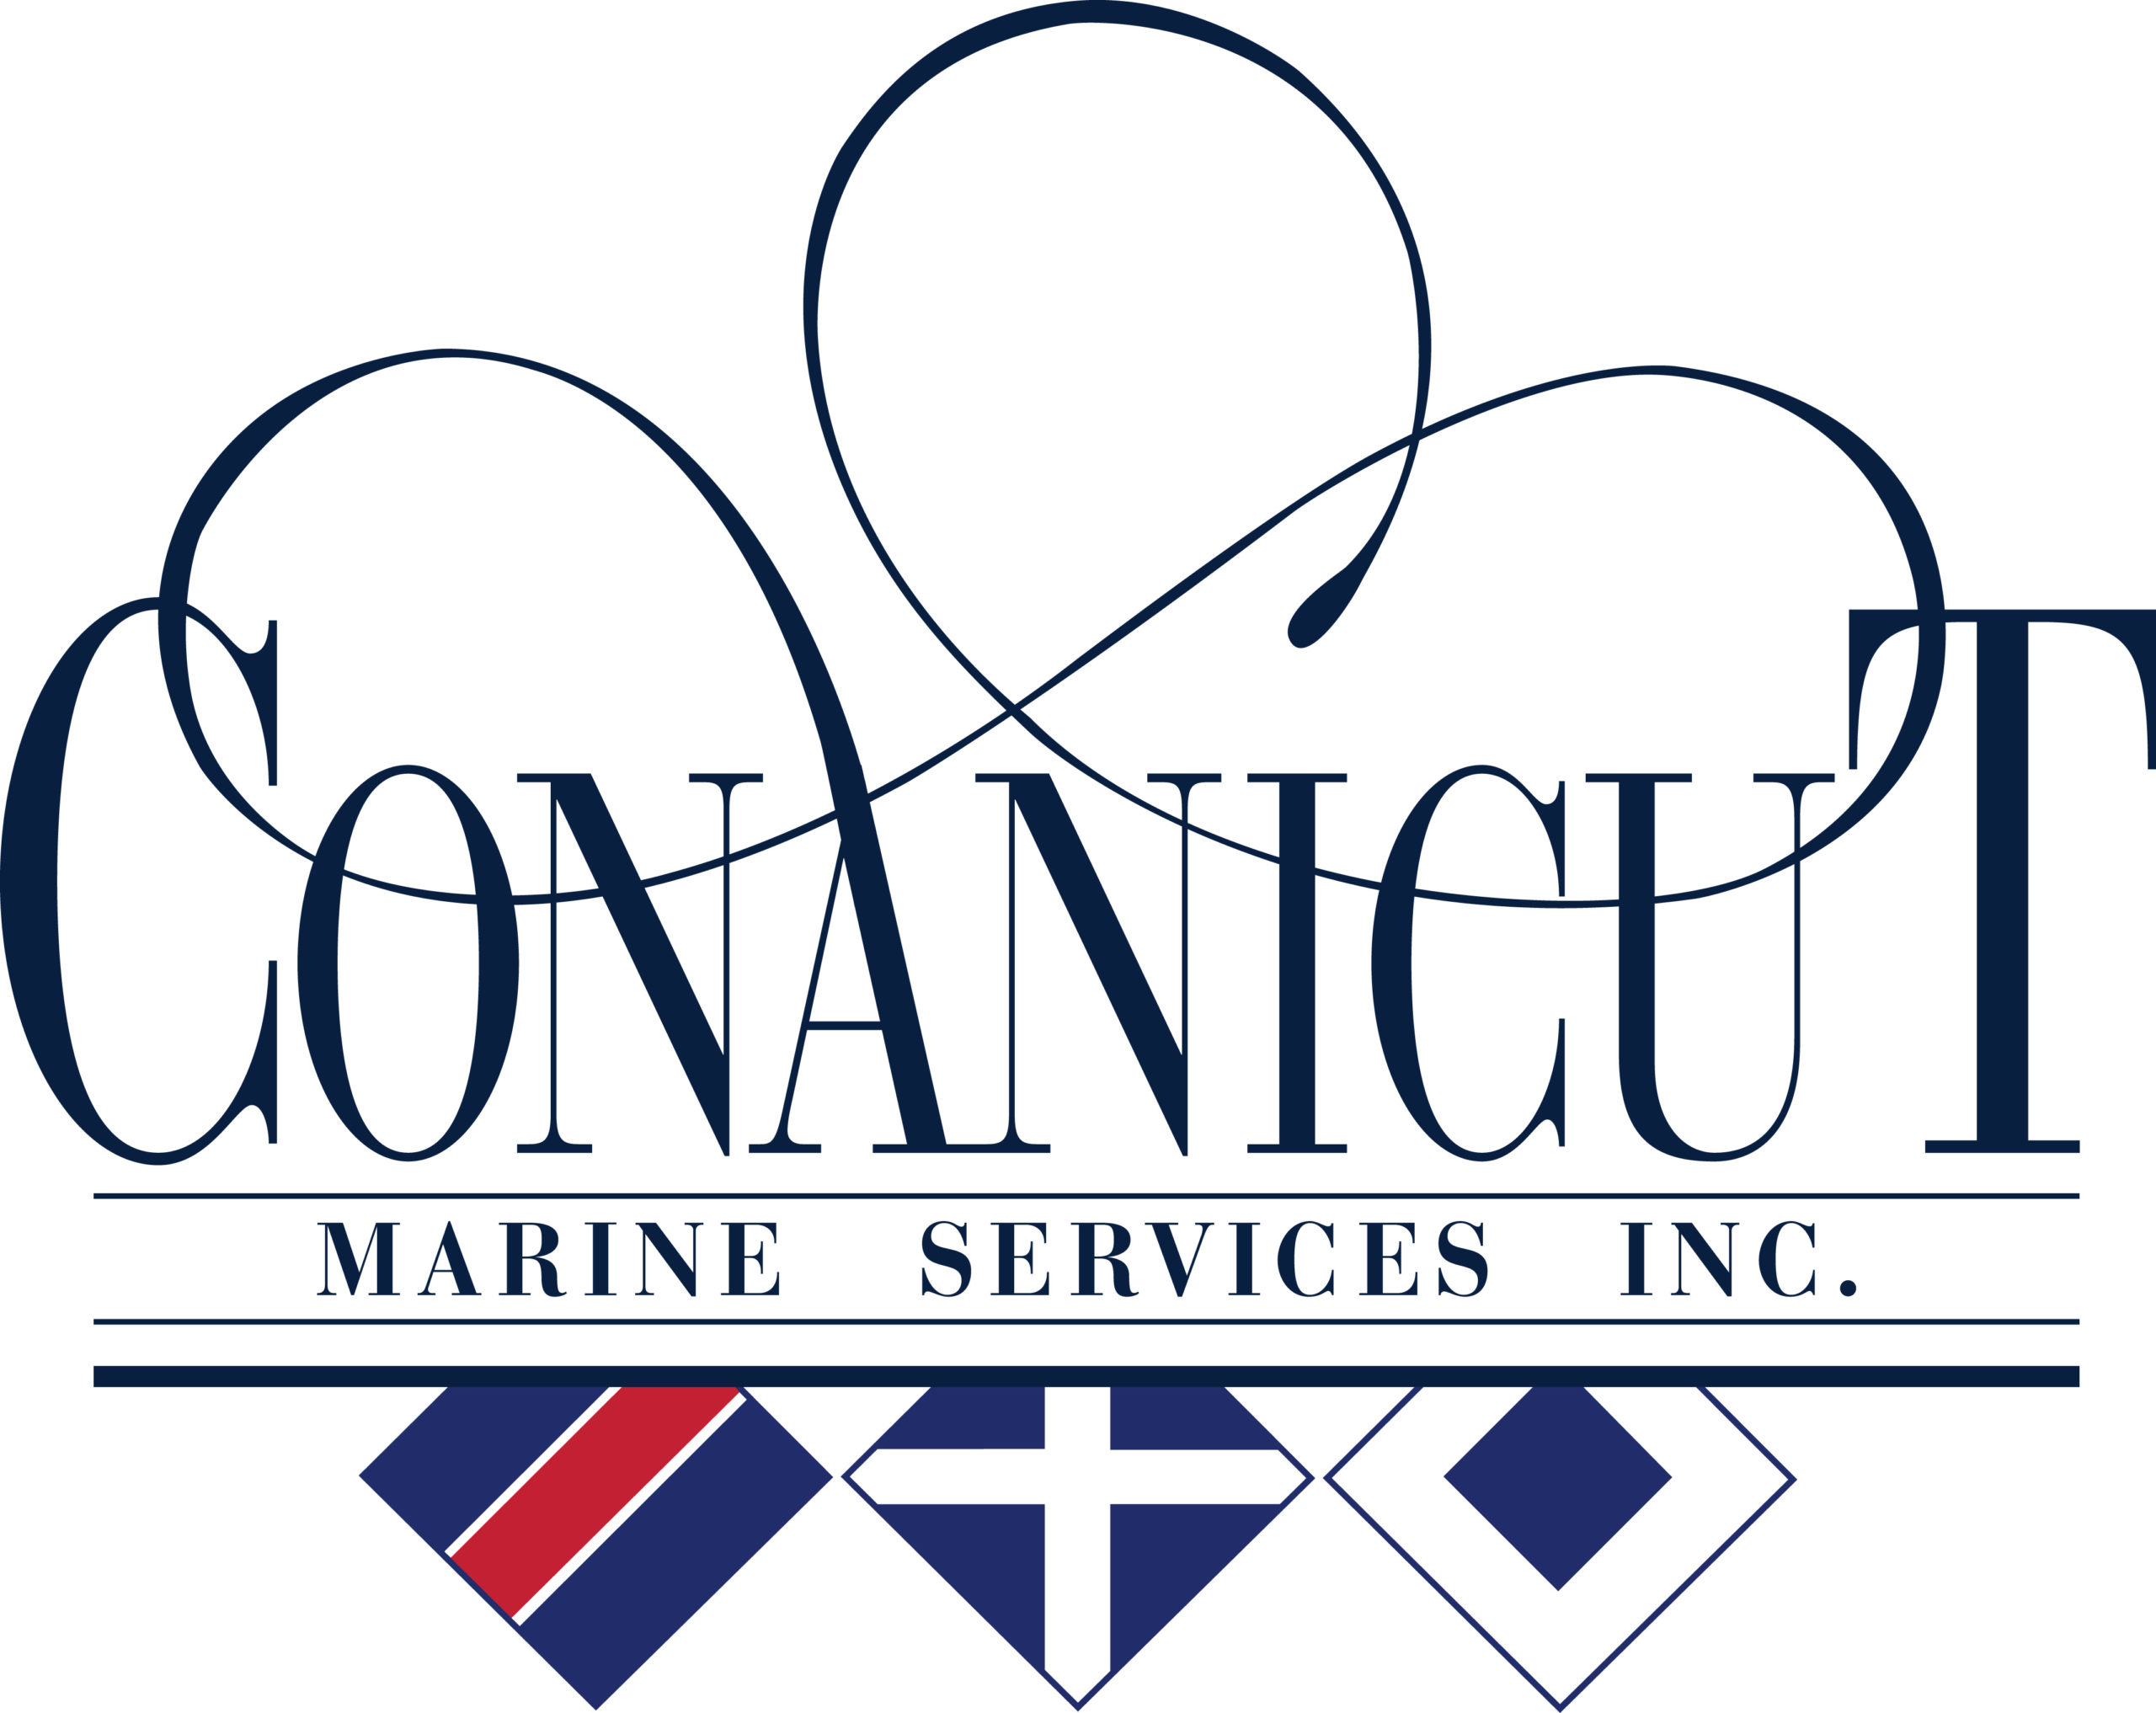 Thank you, Conanicut Marine Services, for sponsoring Save The Bay in 2020!